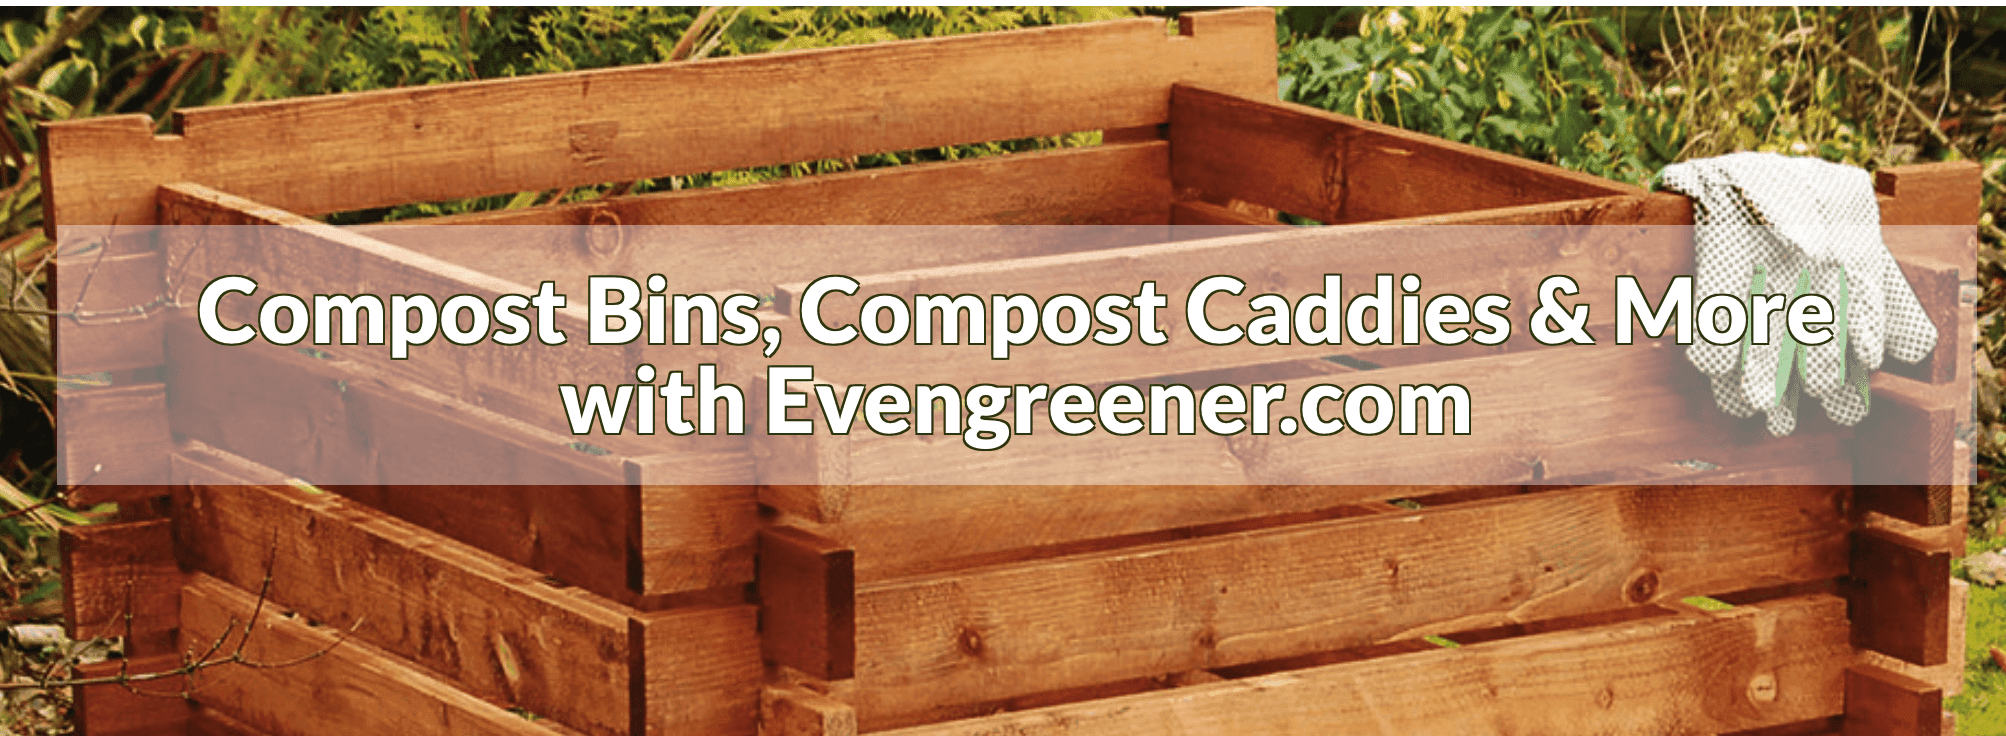 evengreener.com – Specialists Compost Bins and Garden Products